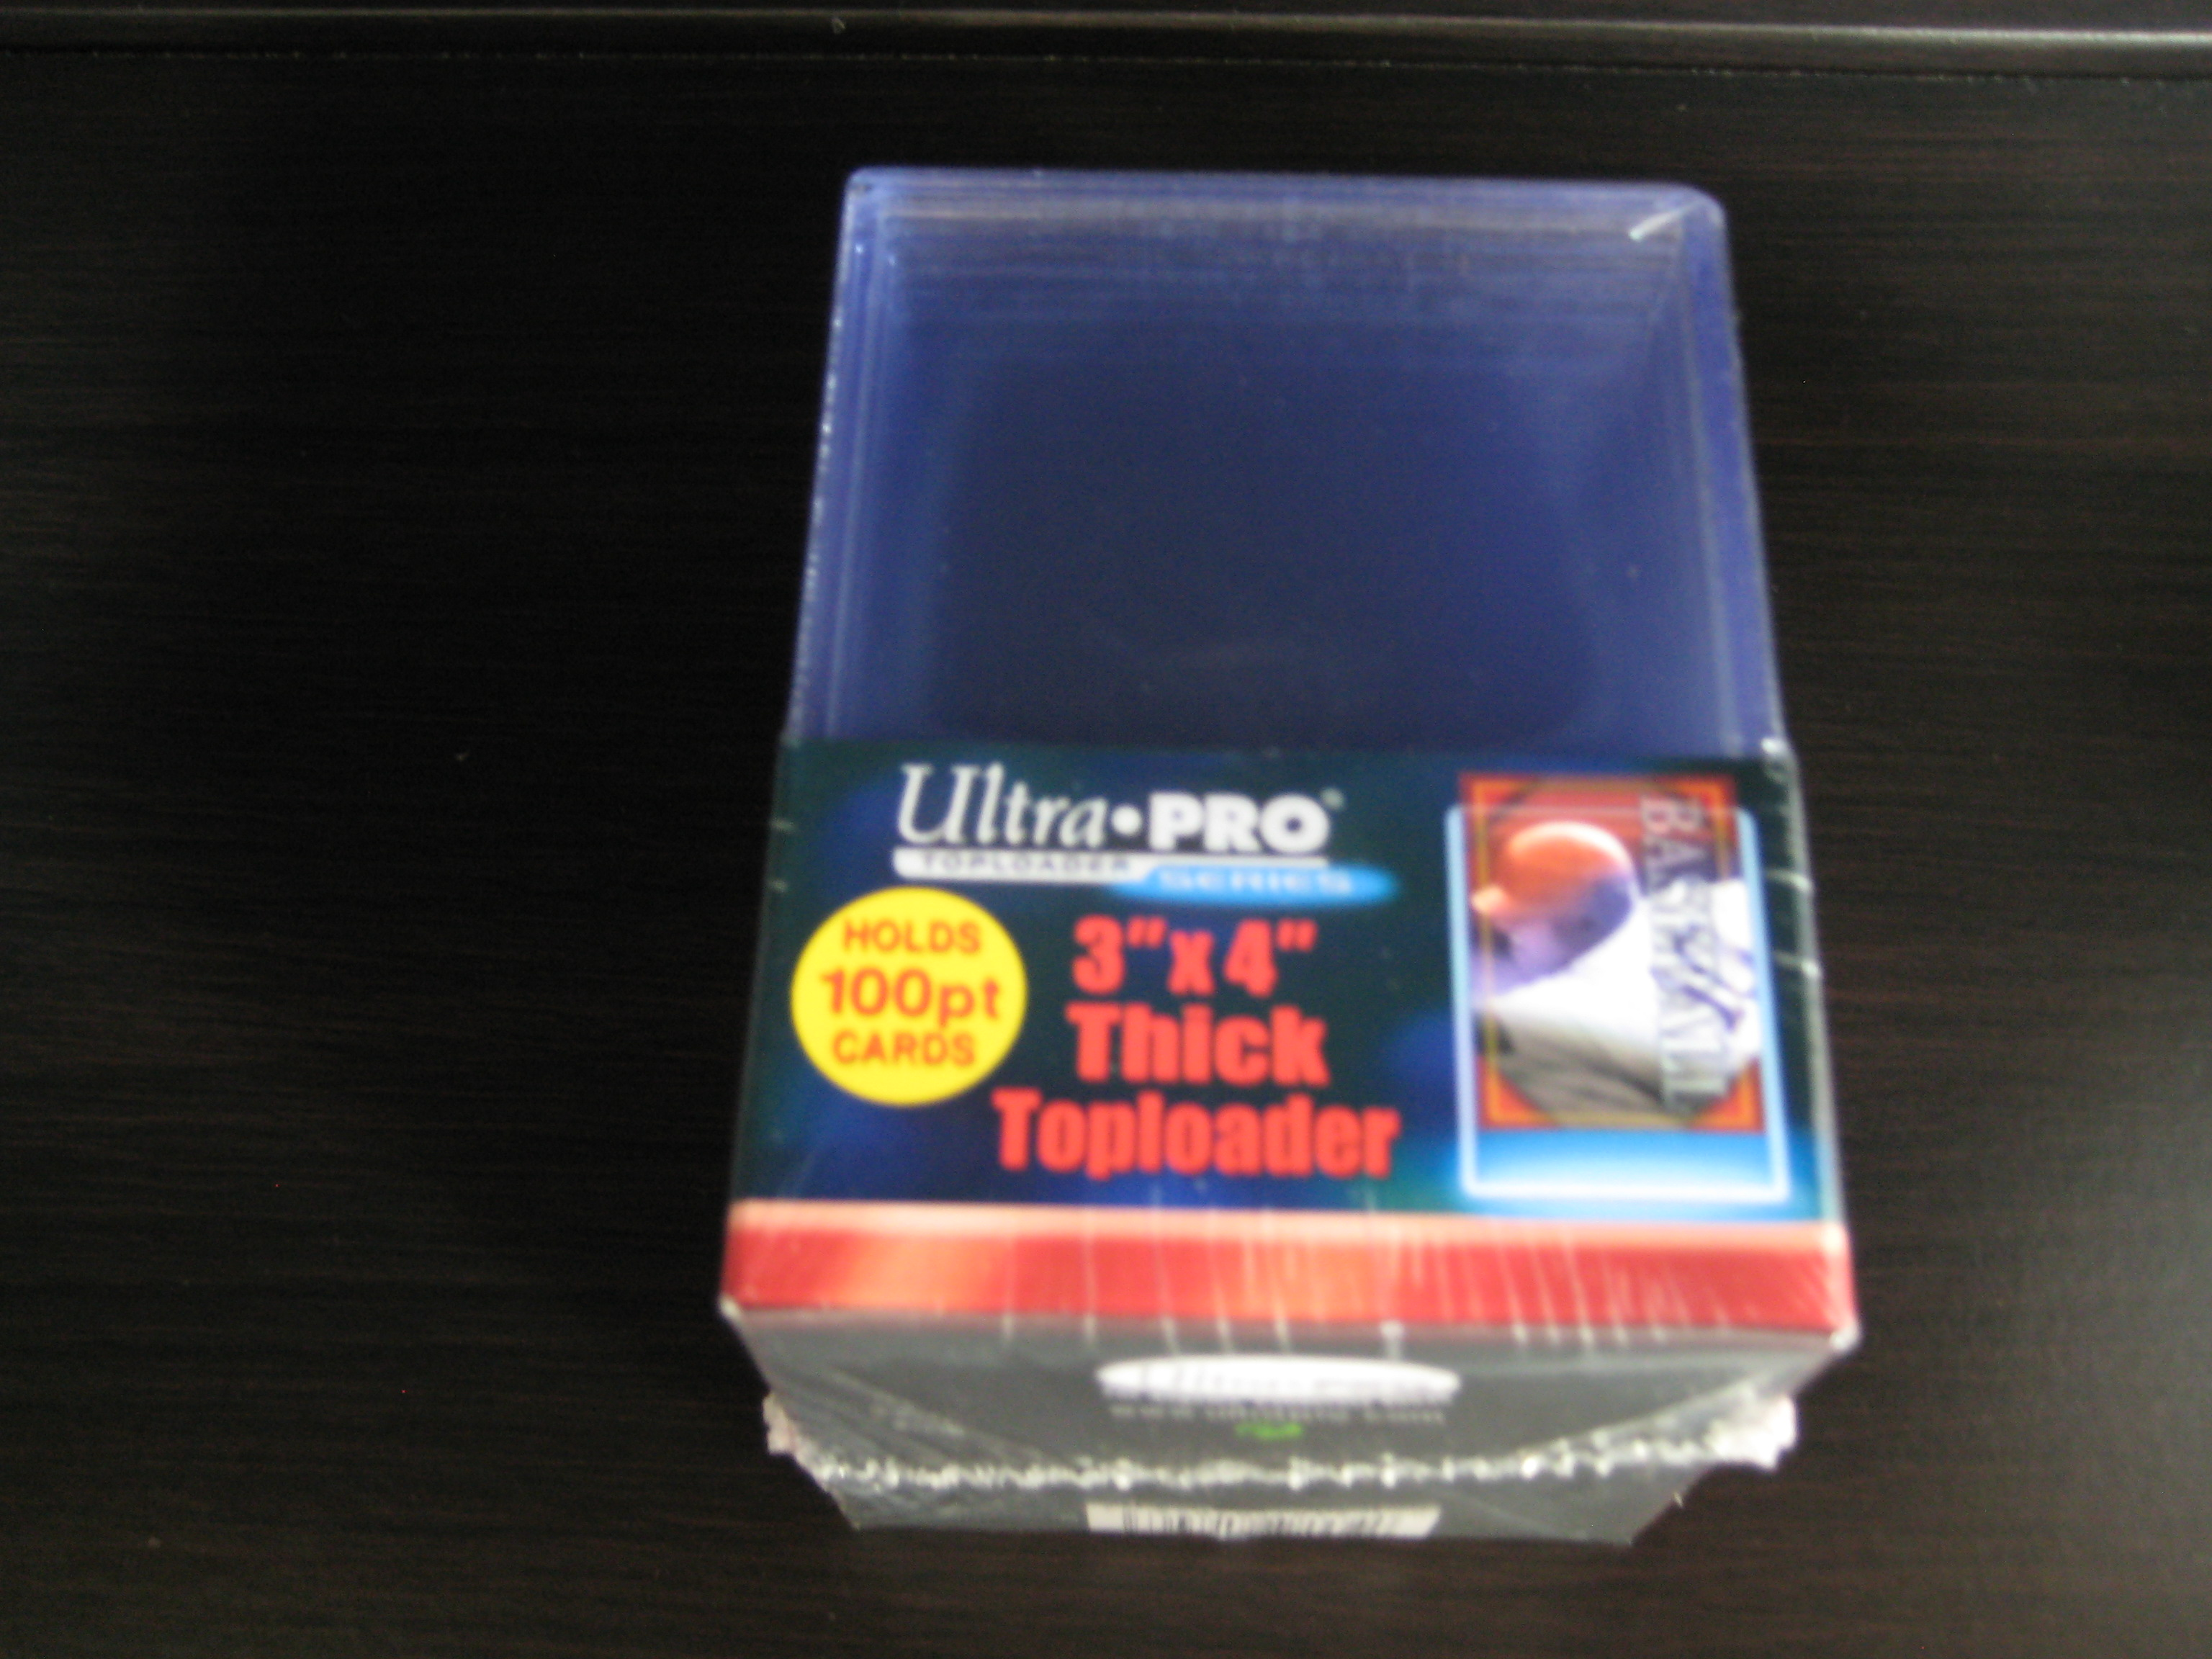 Ultra Pro Top Loader 100 P (3×4 Thick) 25枚入り